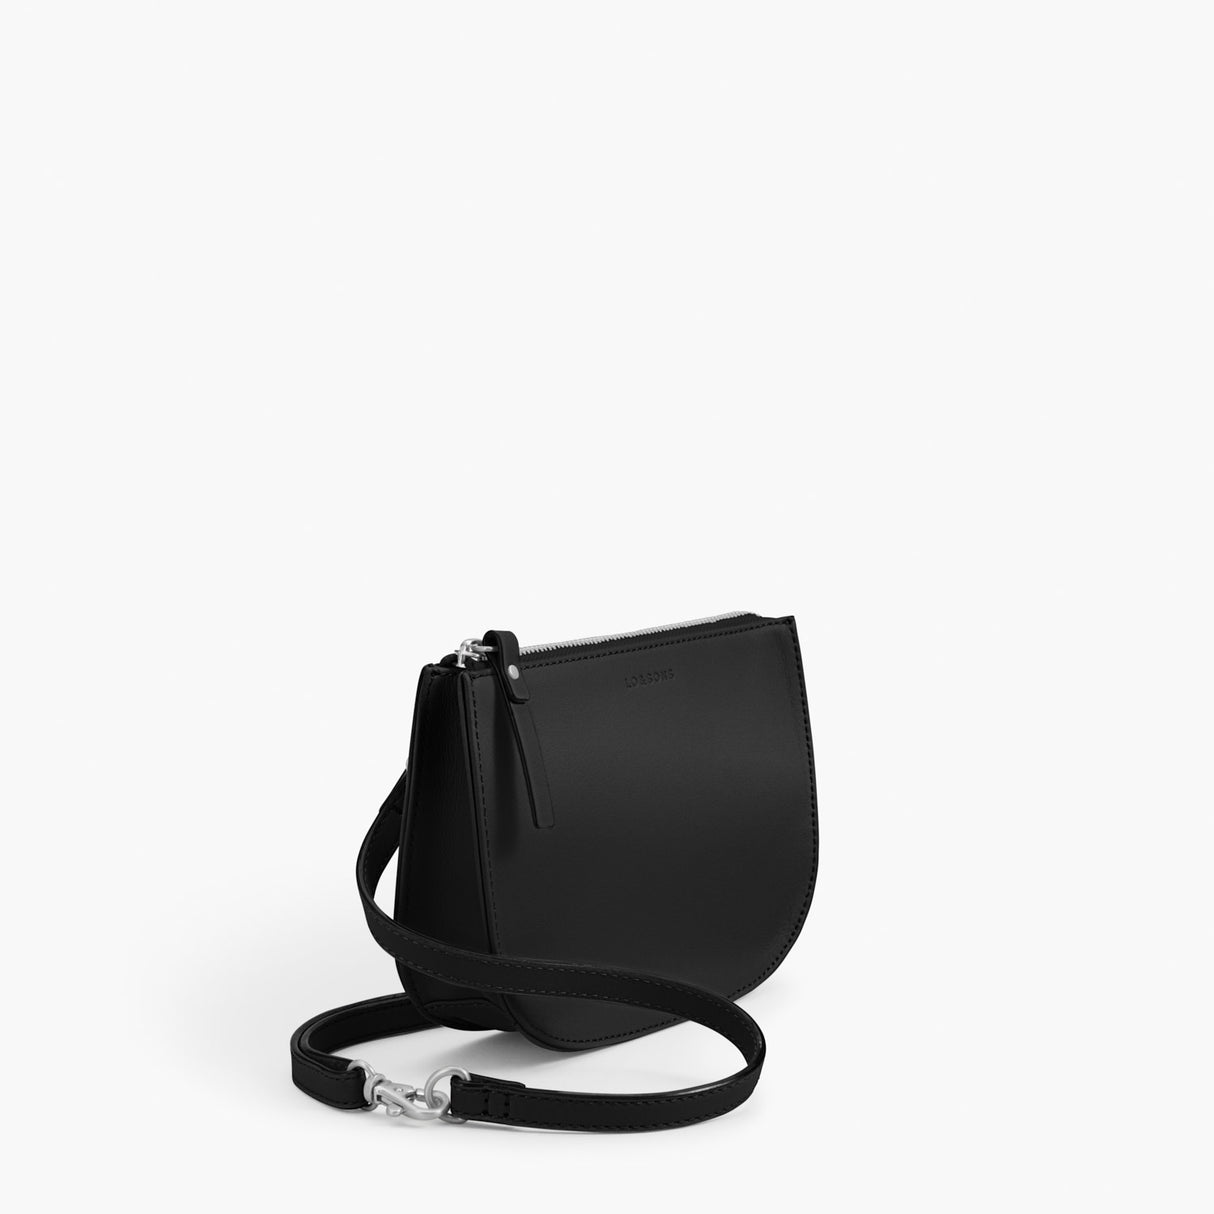 Side - Waverley 2 - Nappa Leather - Black / Silver / Grey - Crossbody Bag - Lo & Sons